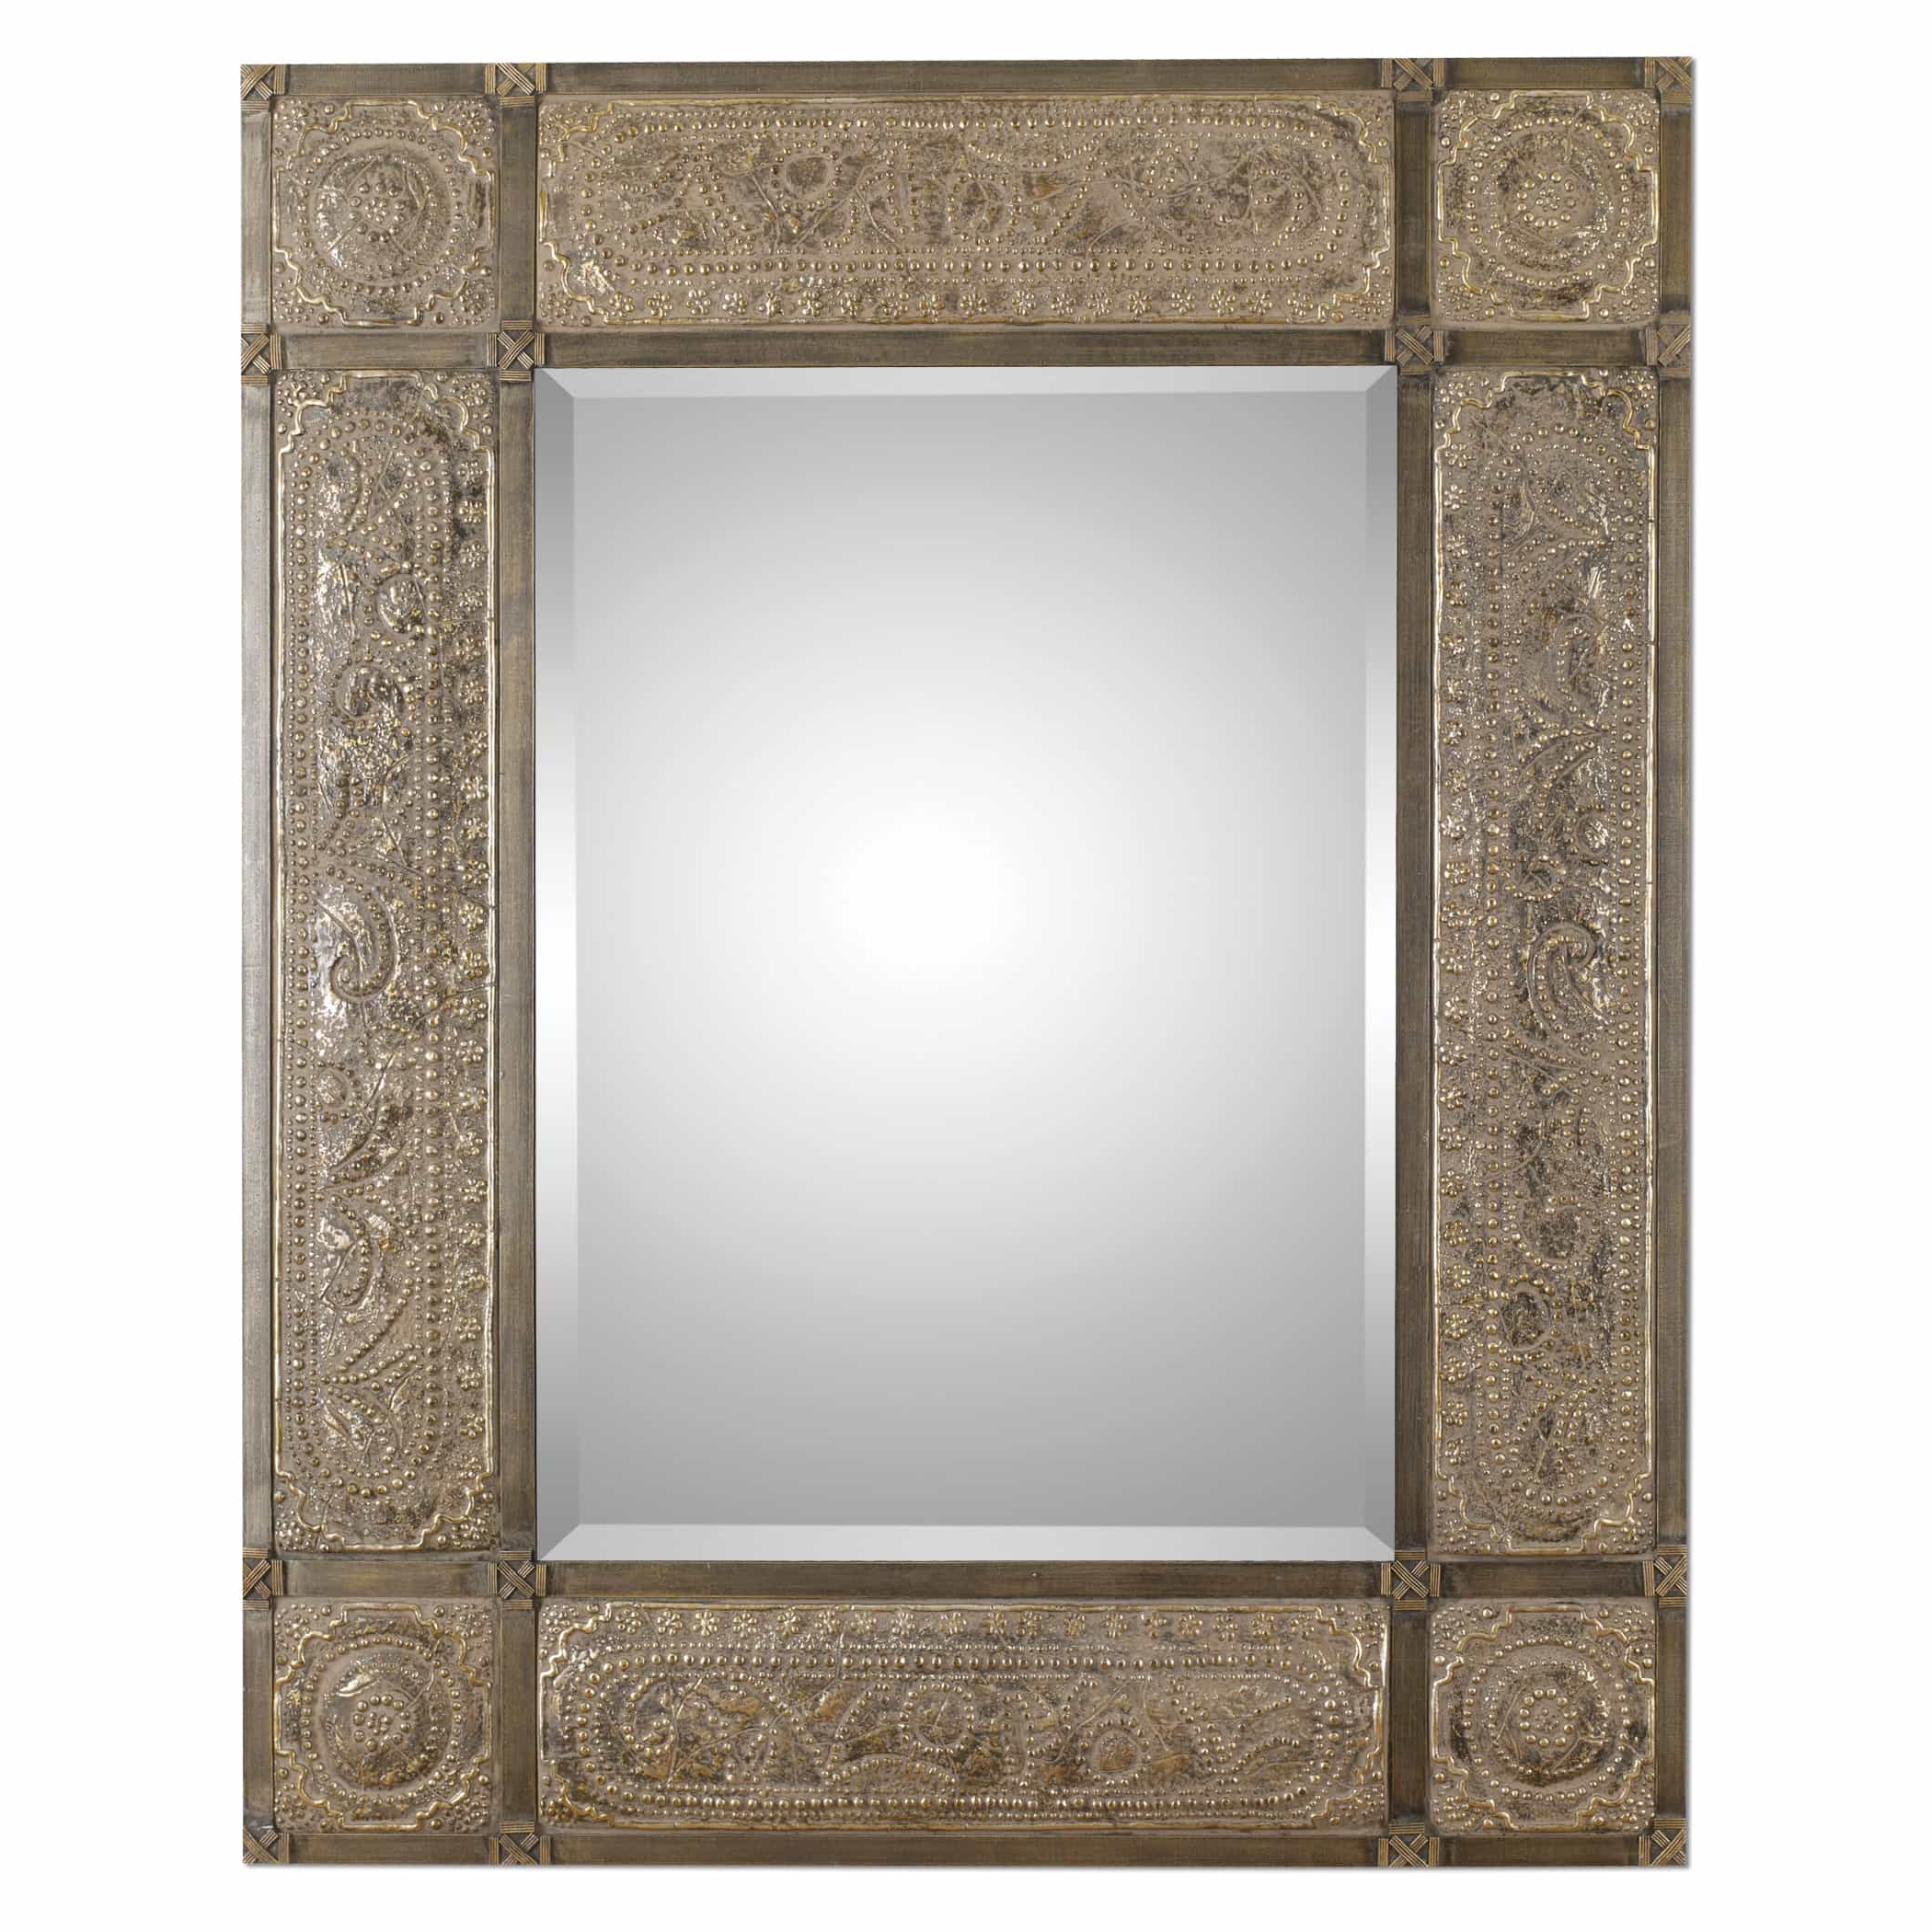 Large Ornate Wall Mirrors Inside Favorite Harvest Serenity Large Ornate Mirroruttermost – 50″ X 60″ (View 16 of 20)